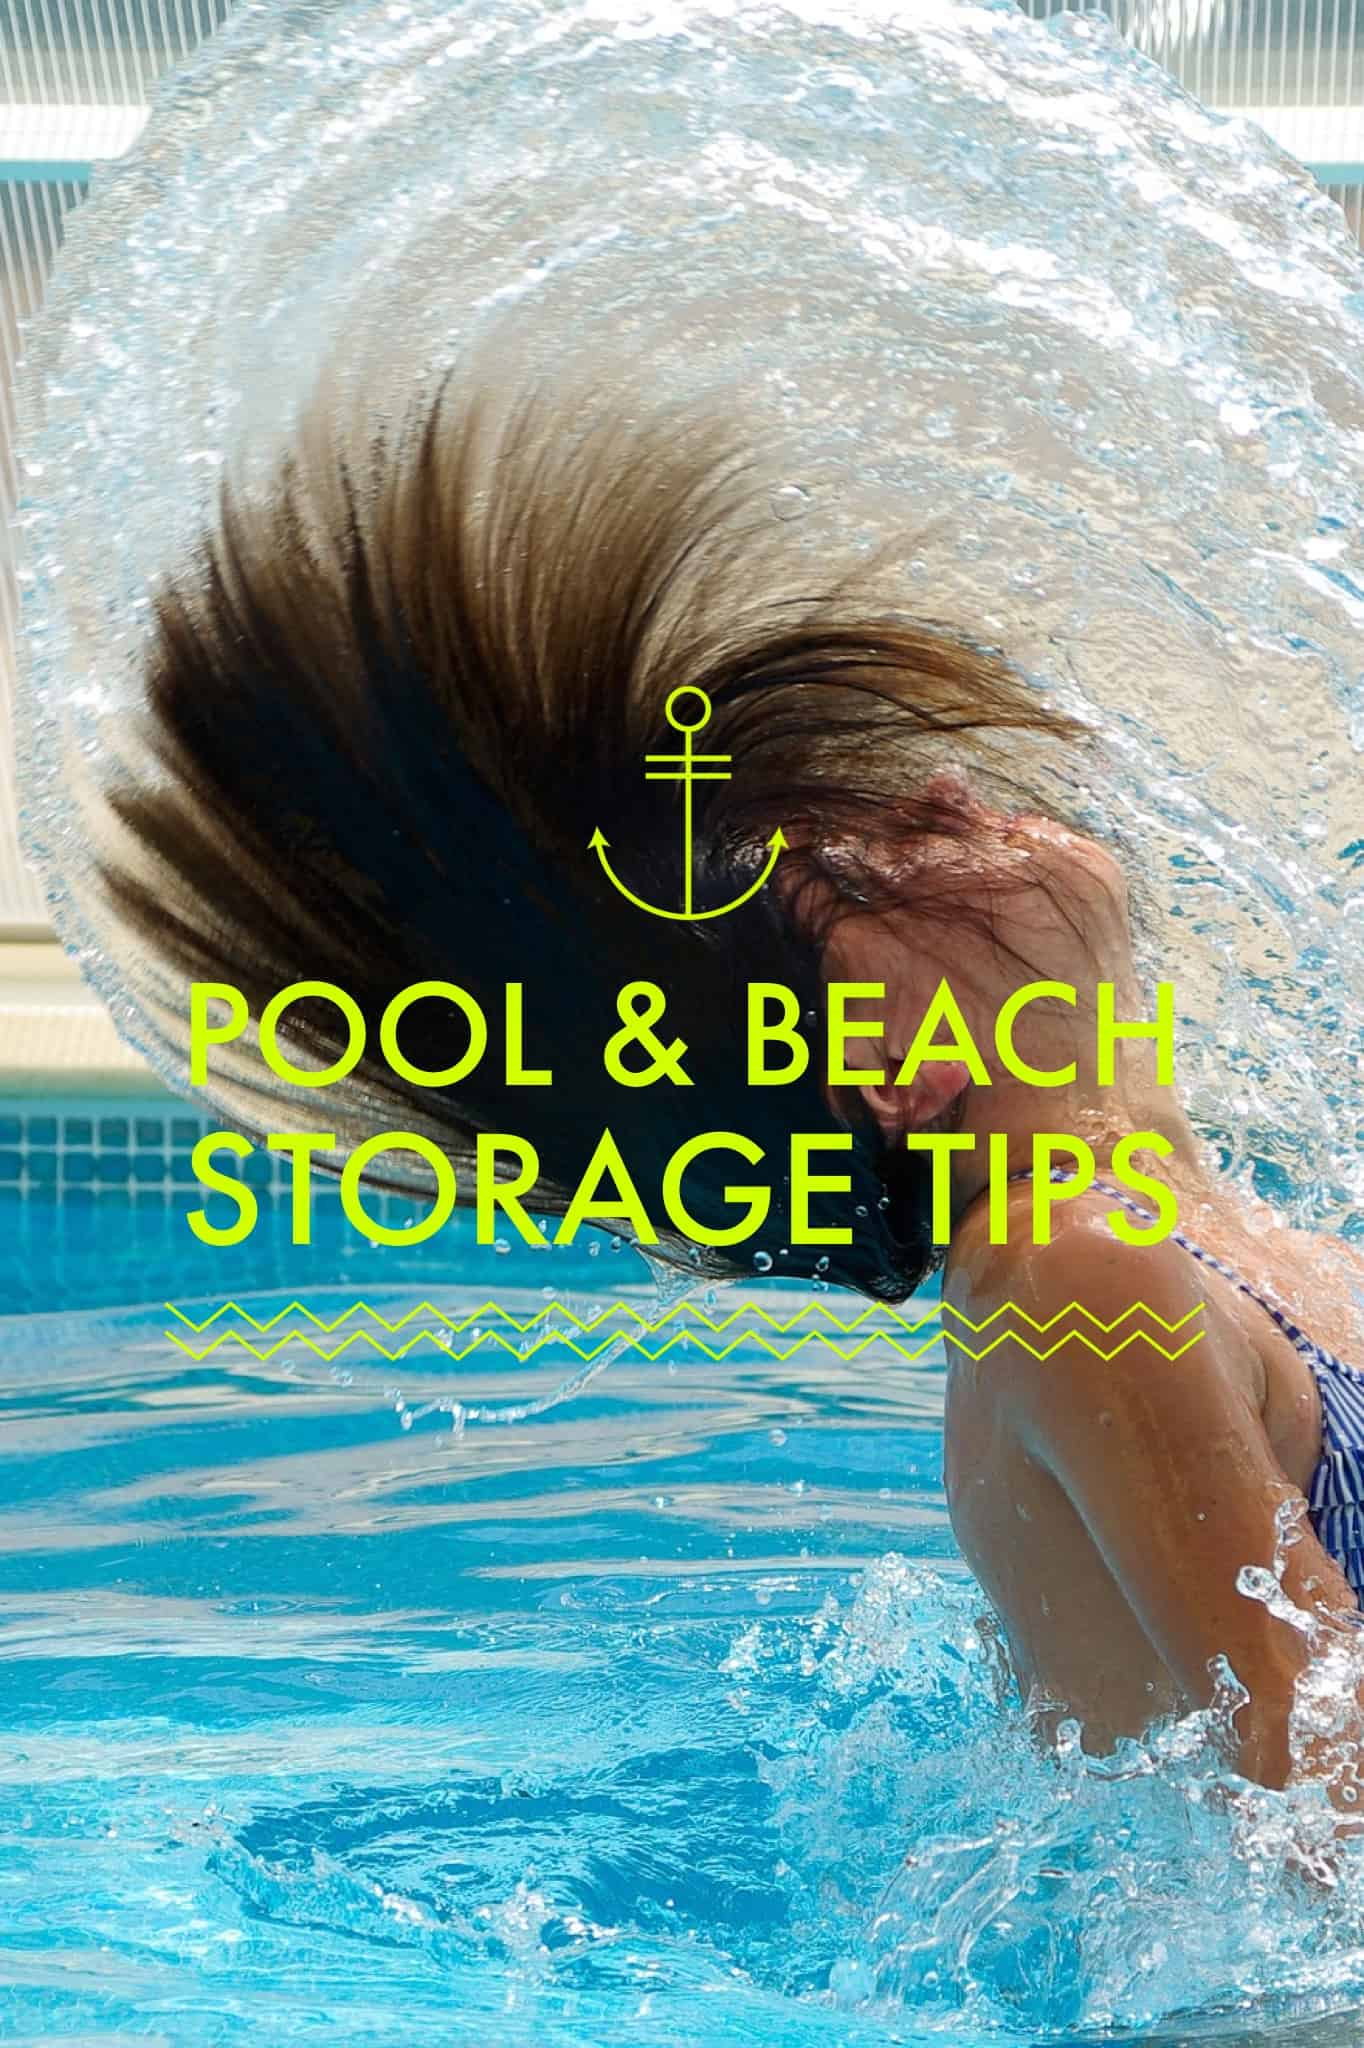 pictures Pool and Beach Tips: What to Know Before You Go